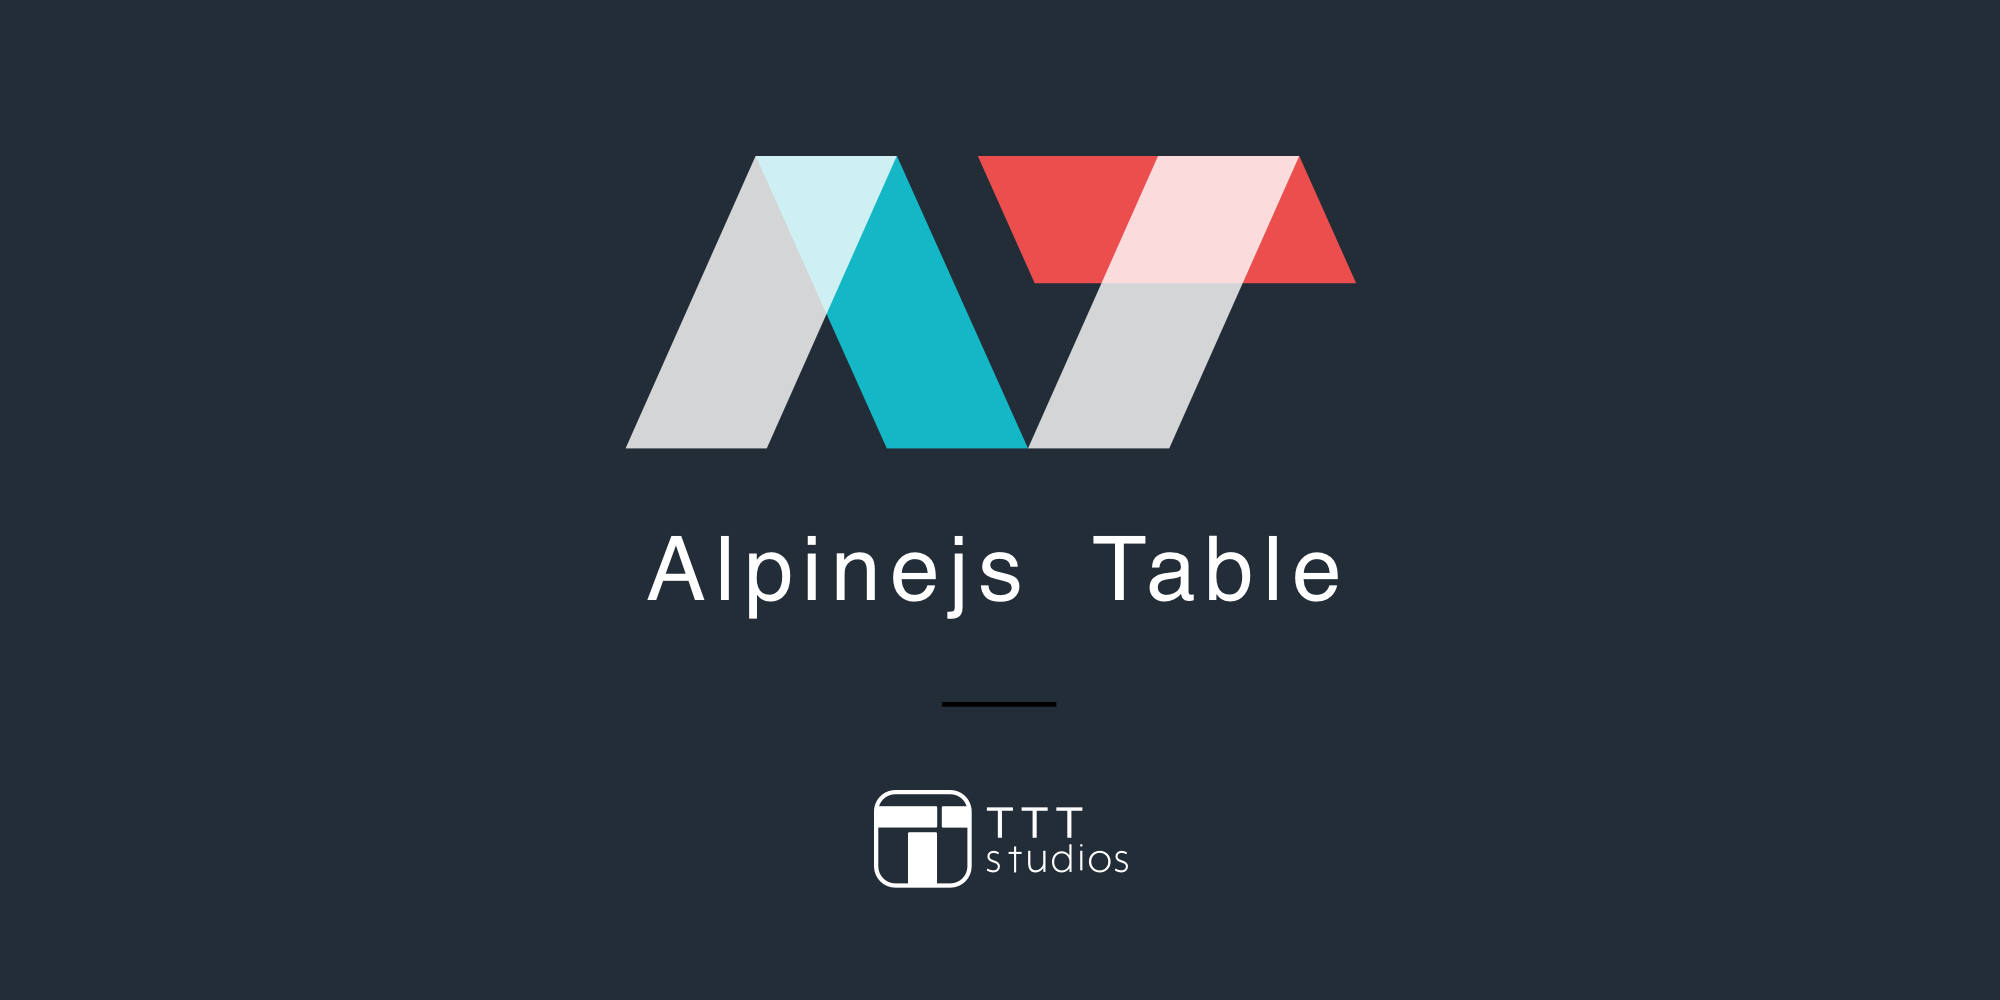 Alpinejs Table logo for blog